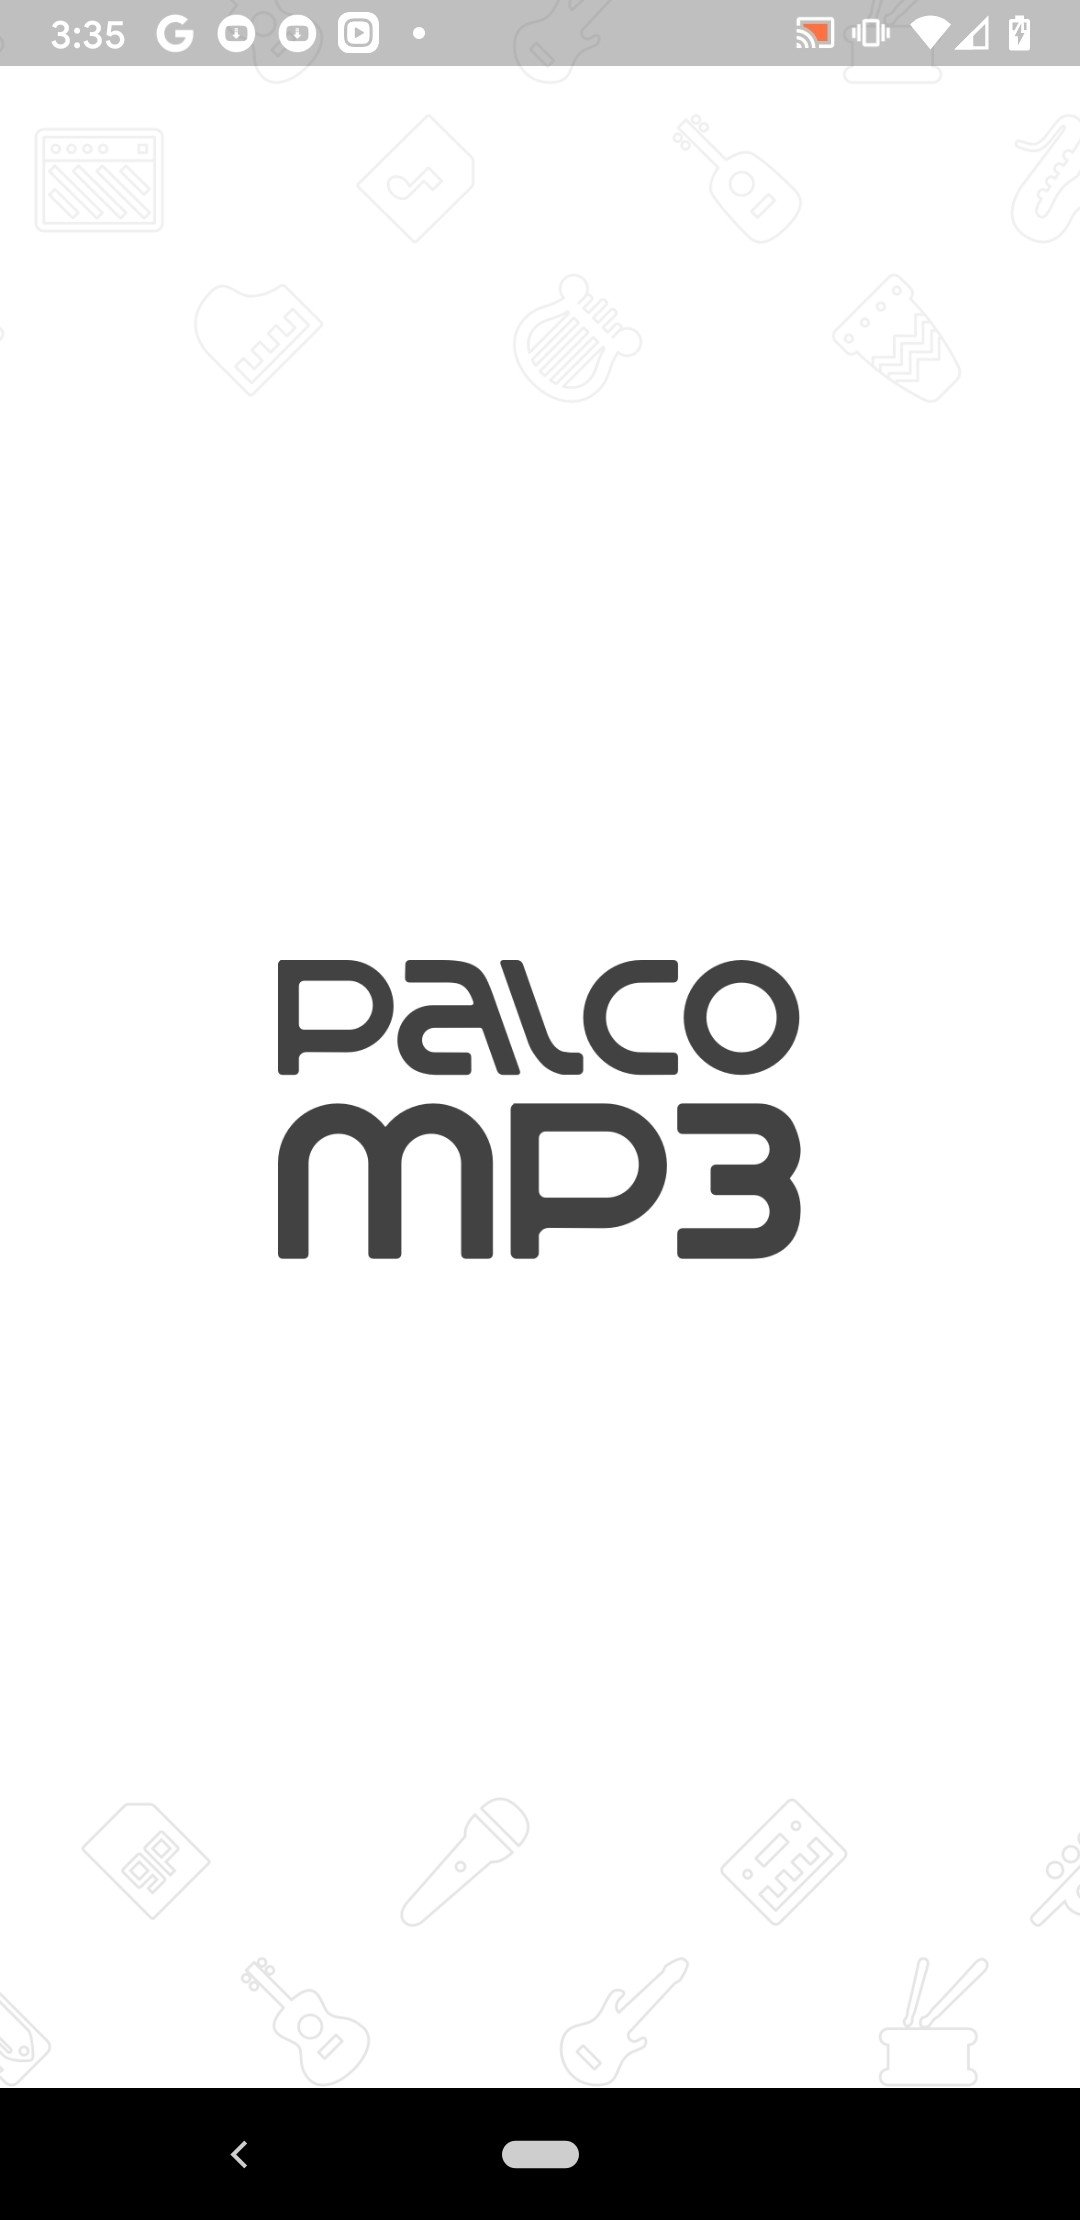 Palco MP3 Android image 5